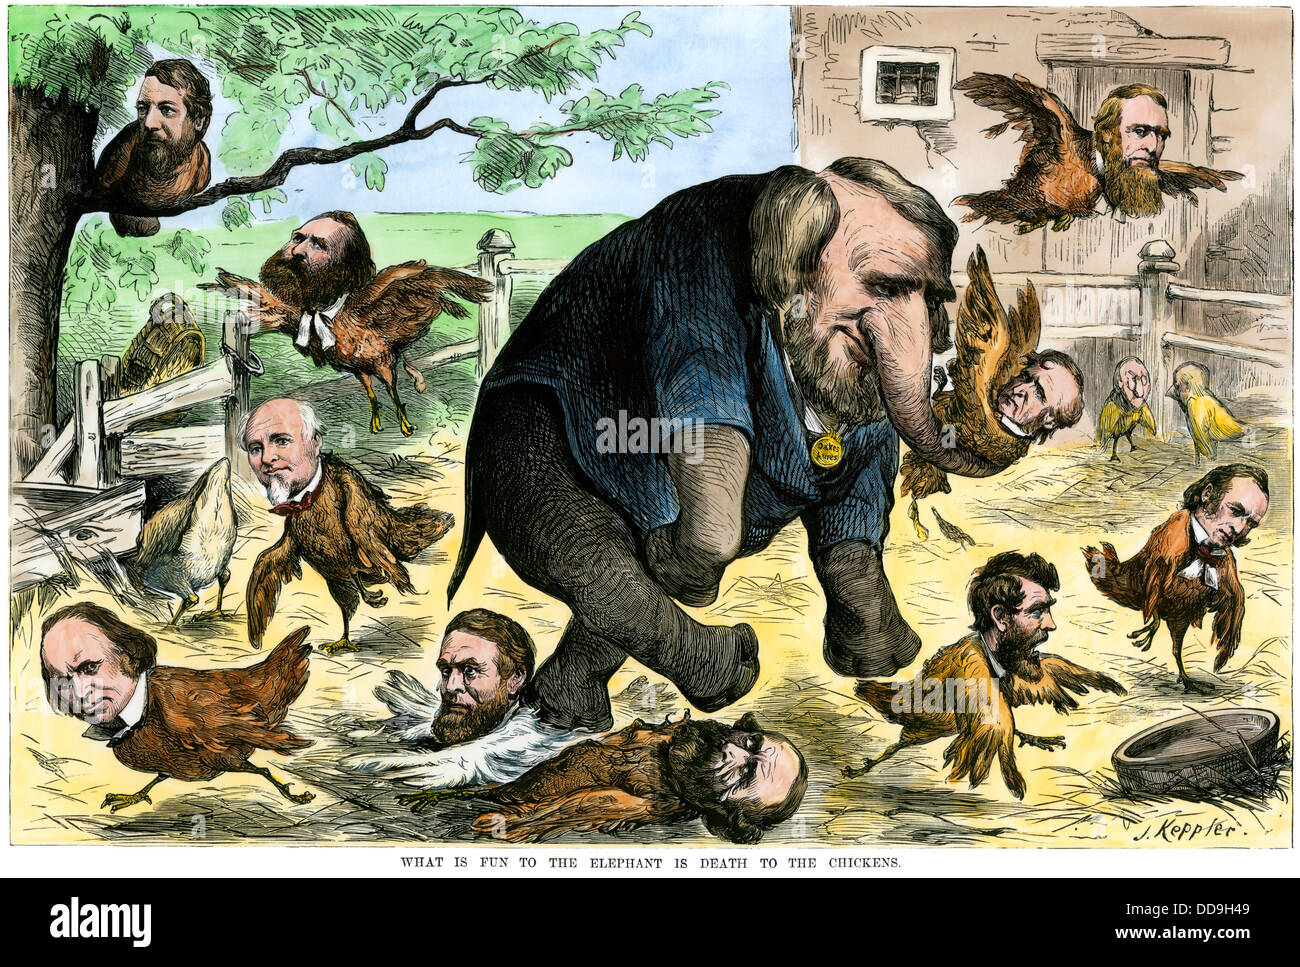 What is fun to the elephant is death to the chickens, a Credit Mobilier cartoon of 1873. Hand-colored woodcut - Stock Image